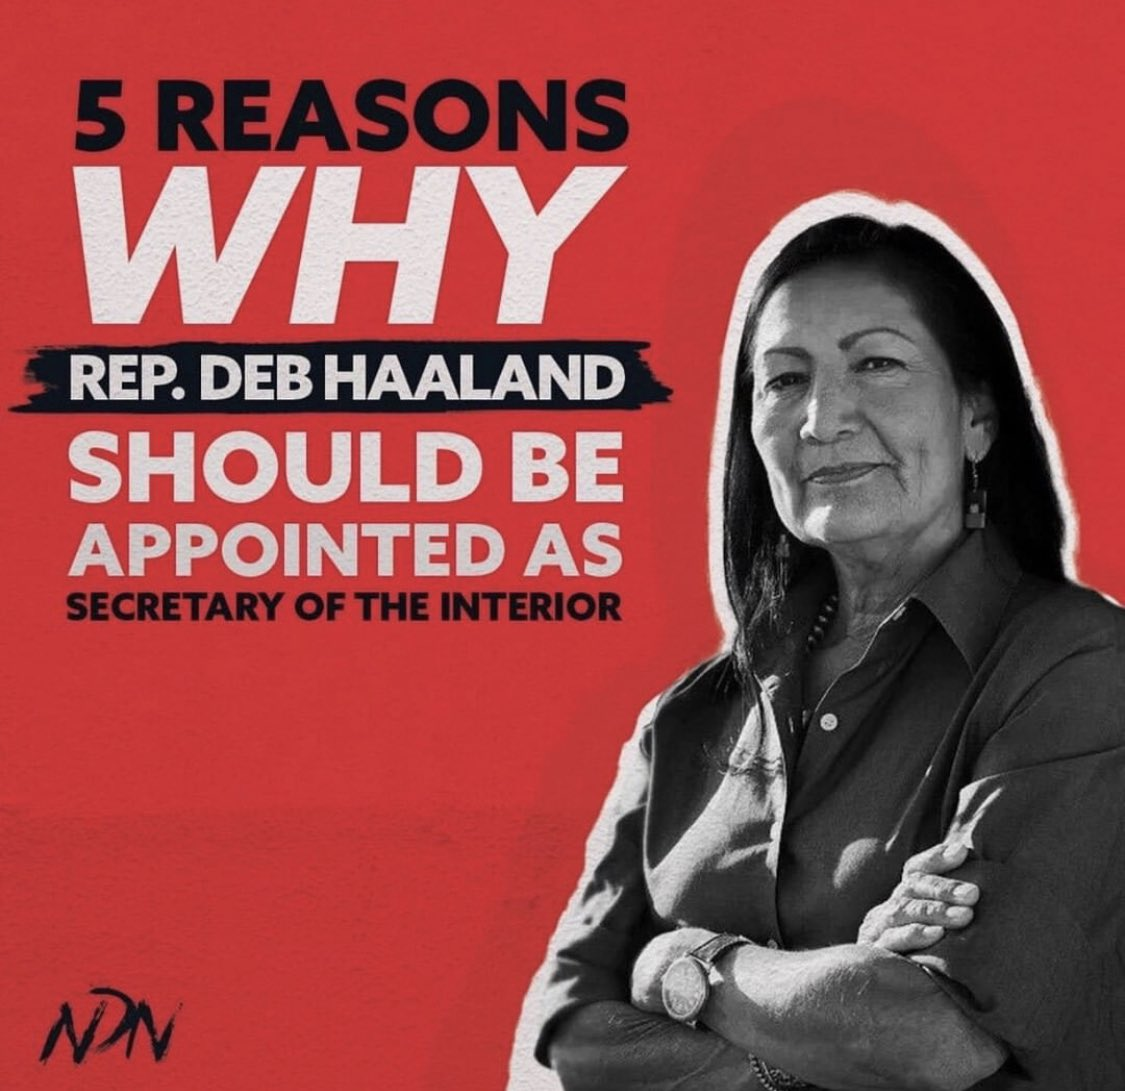 Help us get @RepDebHaaland appointed to head the Department Of Interior. @sunrisemvmt